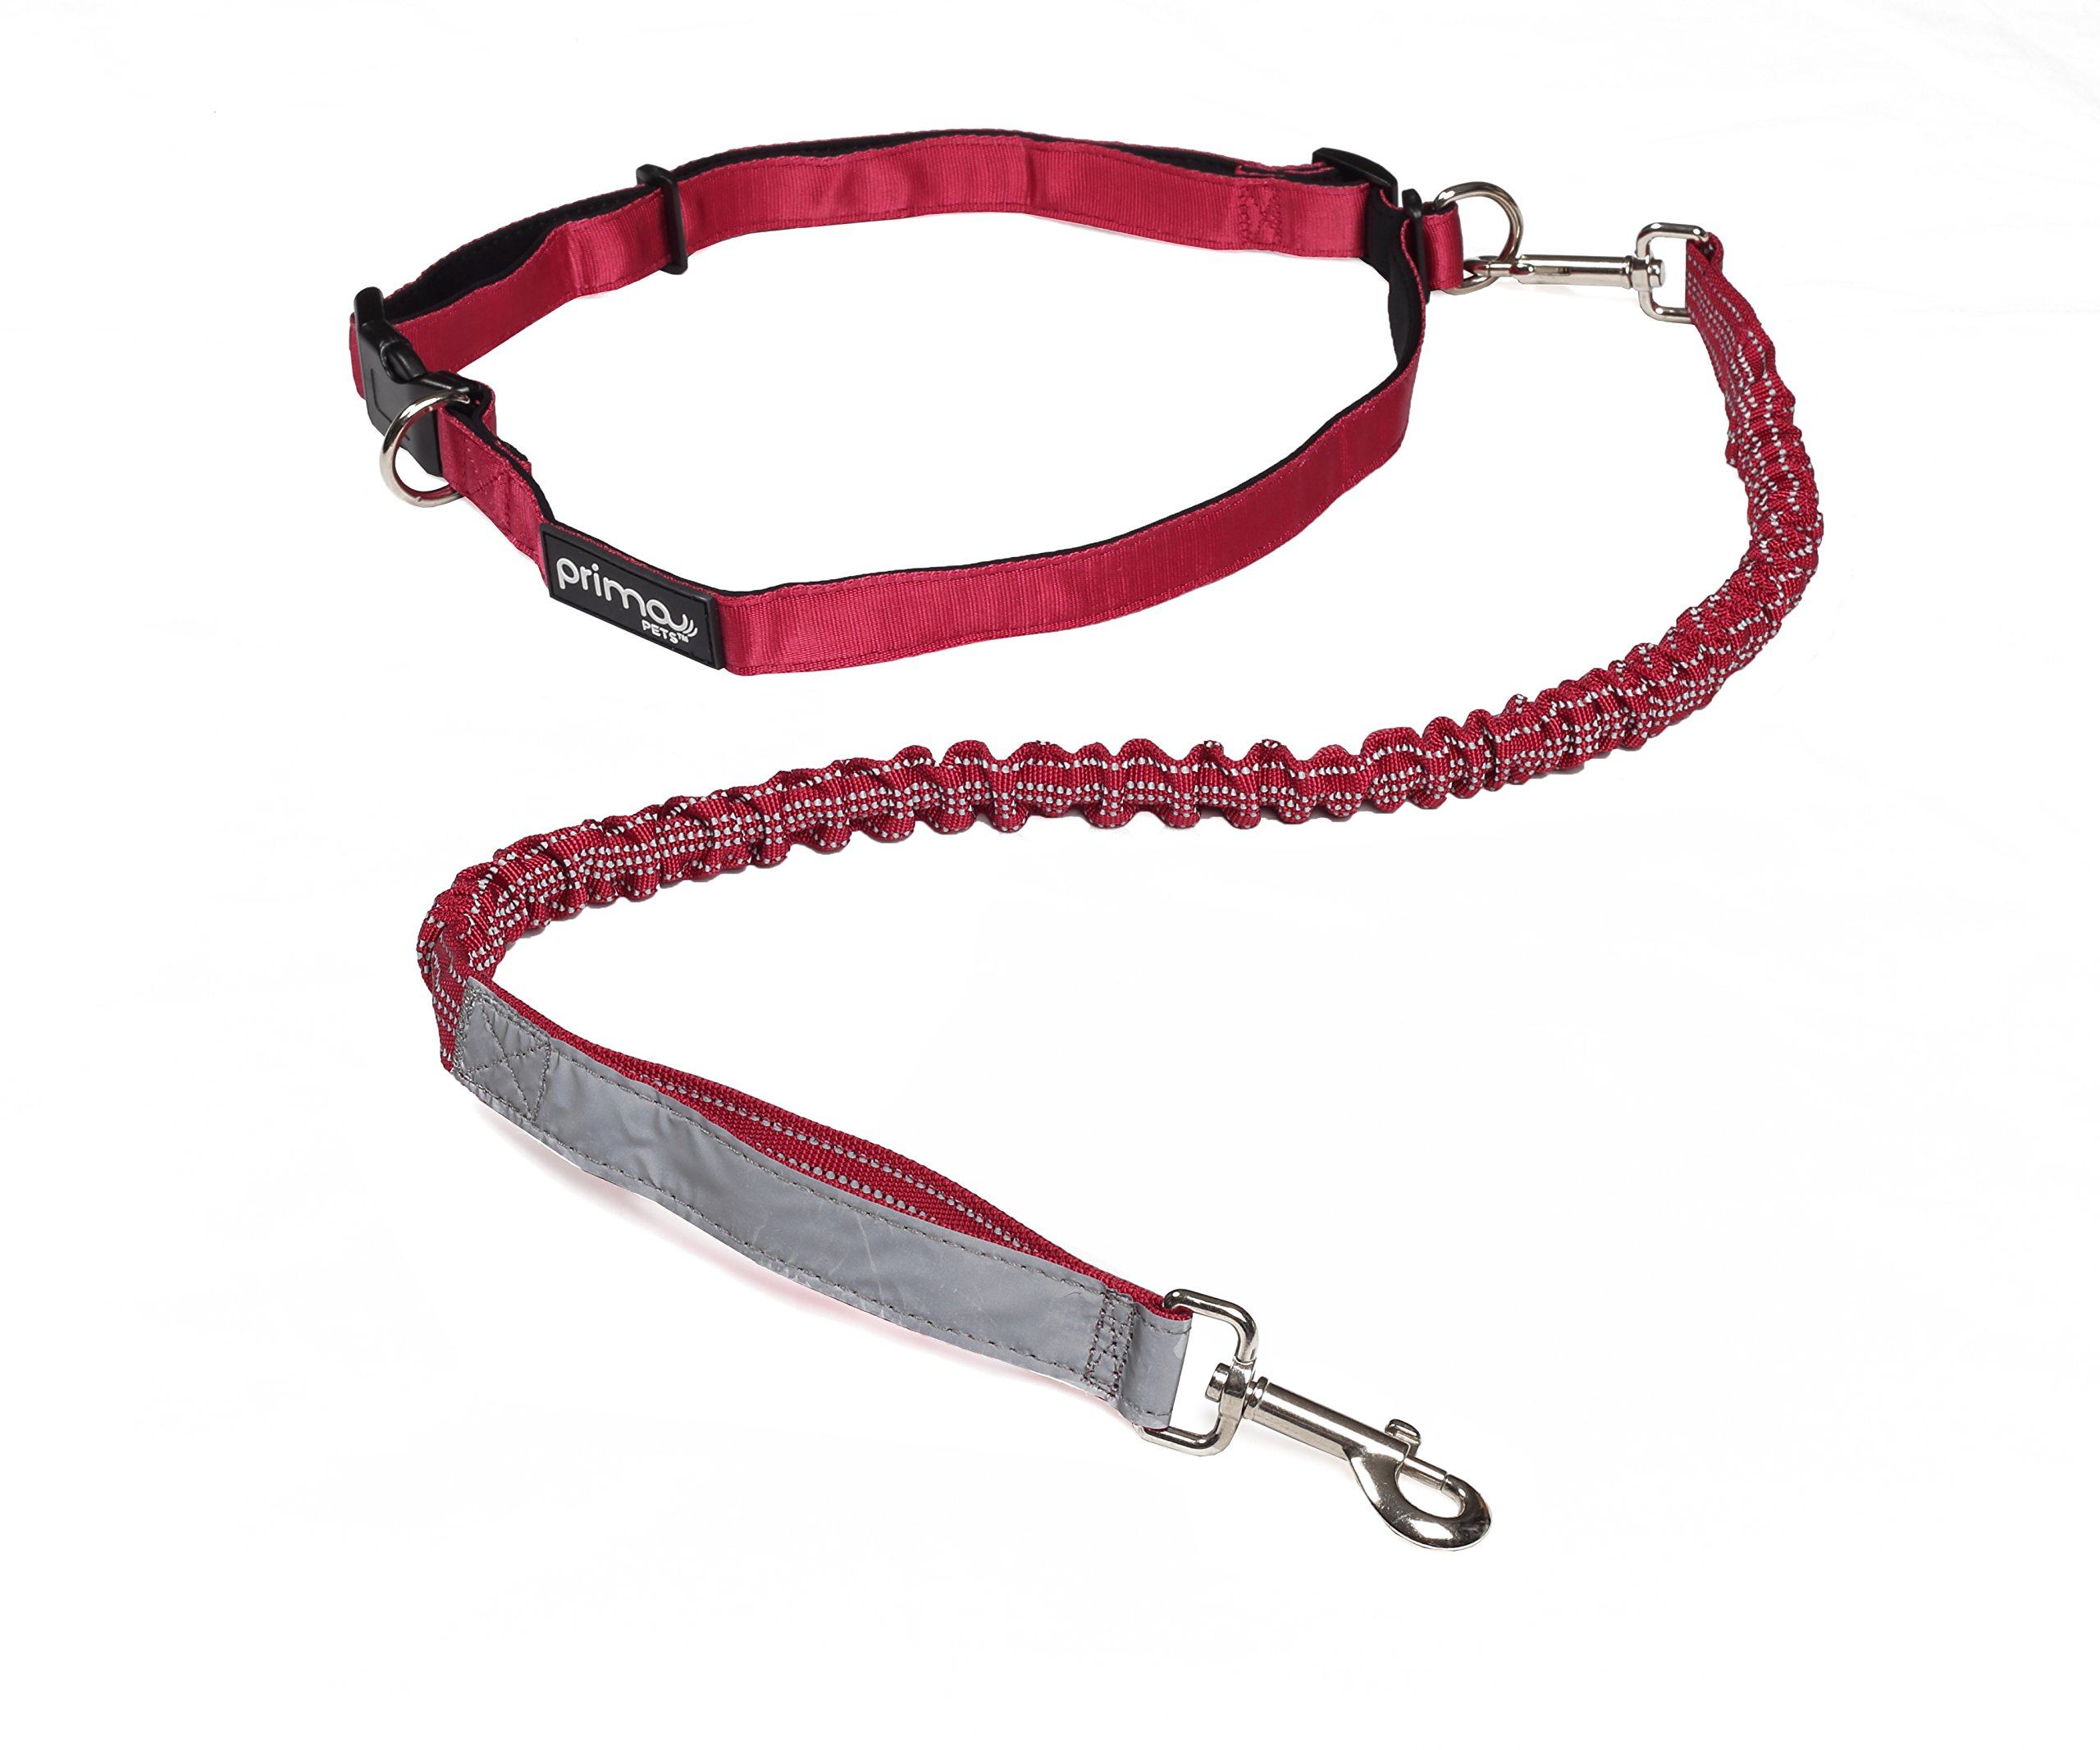 Prima Pet Hands Free Dog Leash - Padded Adjustable Waistband & Reflective Stitching- Perfect for Running, Walking, Jogging, Hiking (RED, 36 inch Bungee)